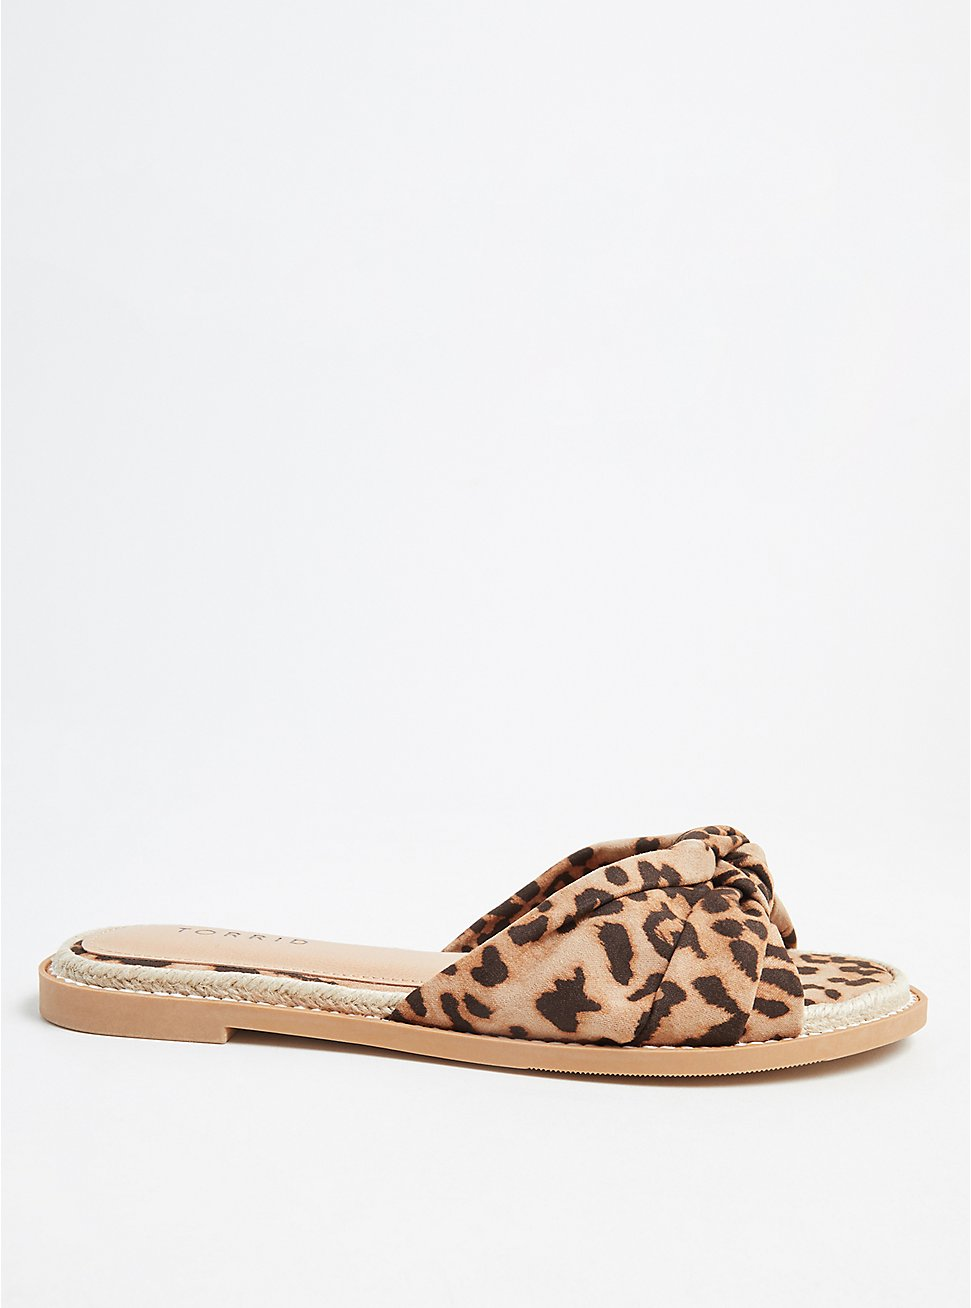 Plus Size Leopard Knot Espadrille Sandal (WW), ANIMAL, hi-res